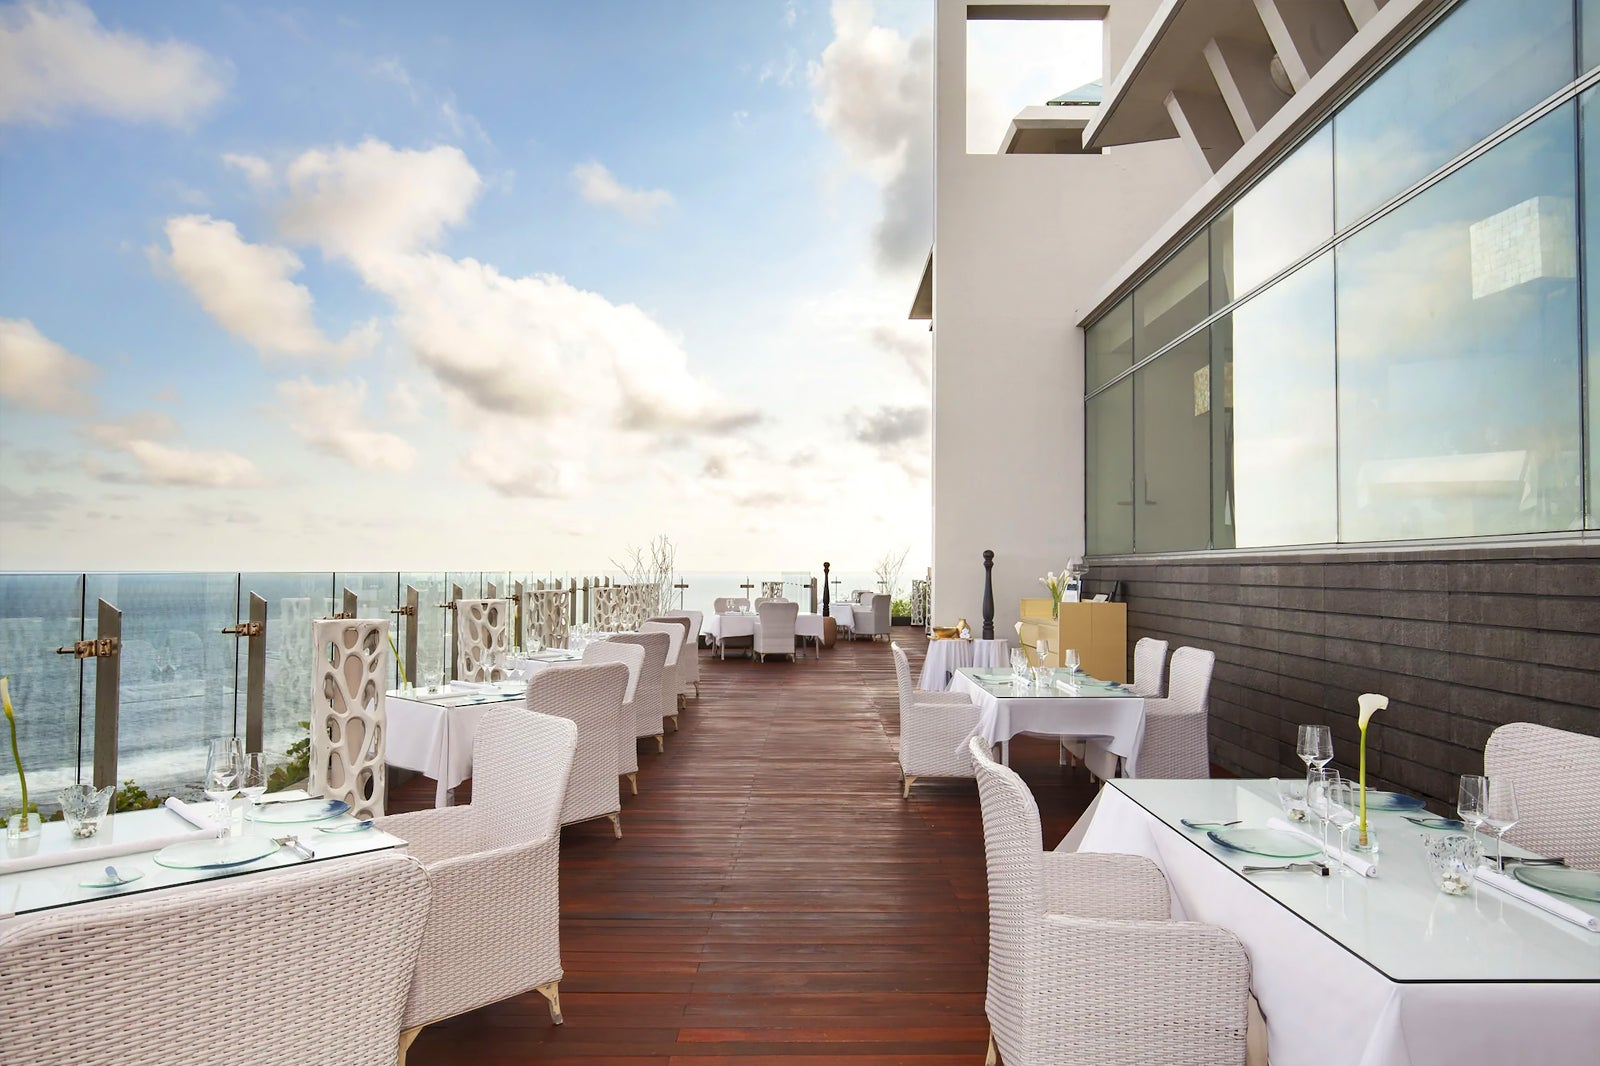 10 Best Romantic Restaurants In Bali Where To Go For A Romantic Dinner In Bali